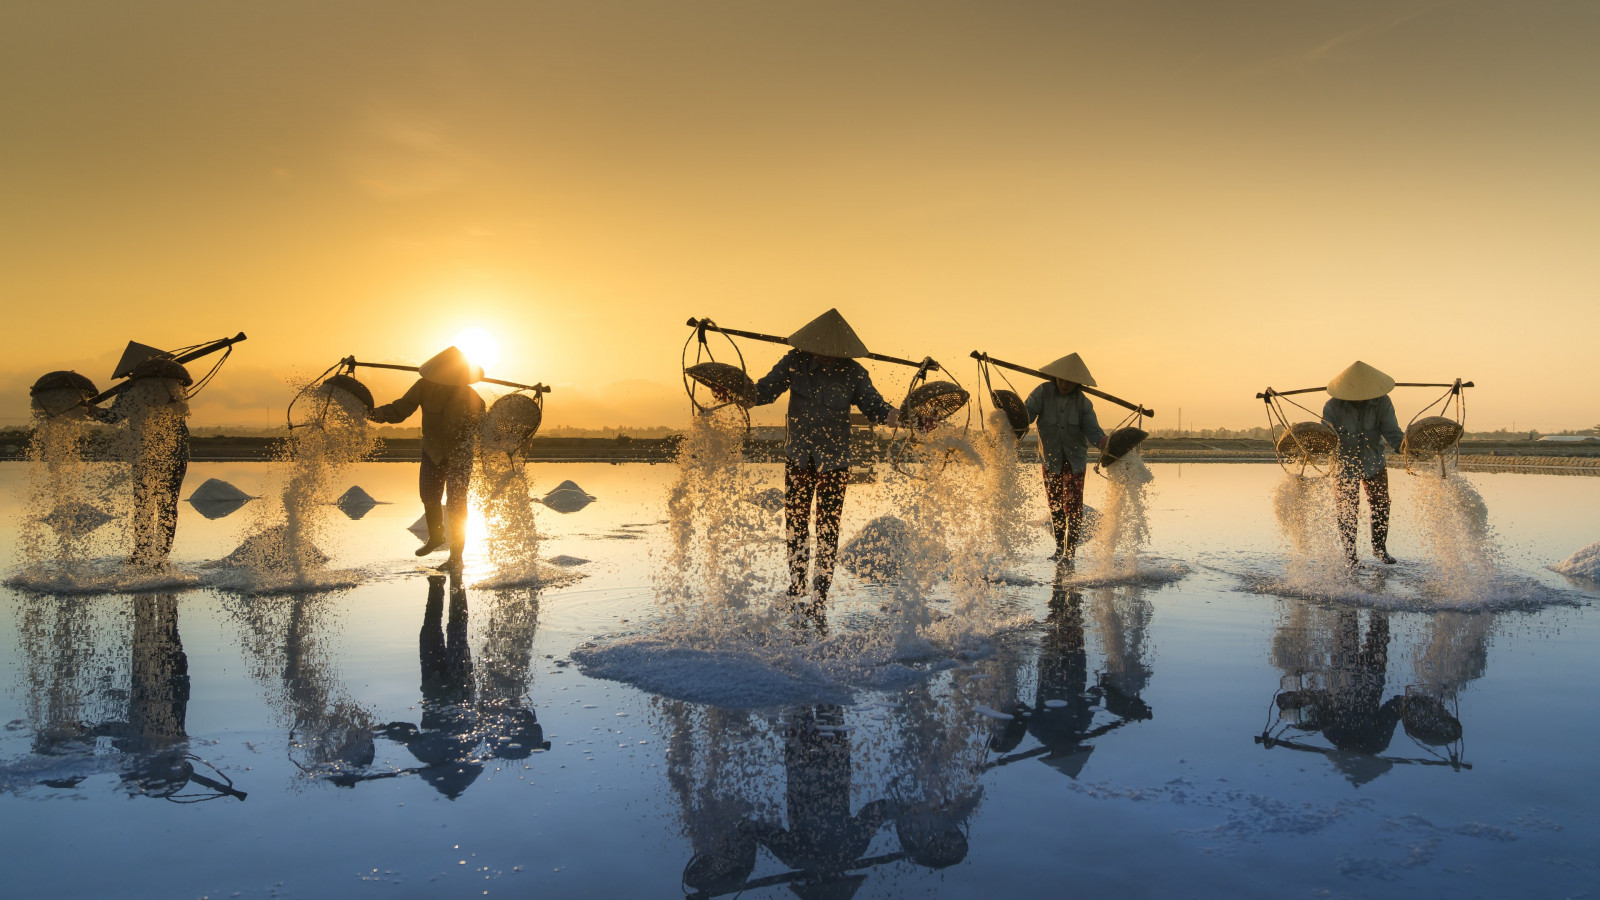 People harvesting salt in Vietnam | 1600x900 wallpaper